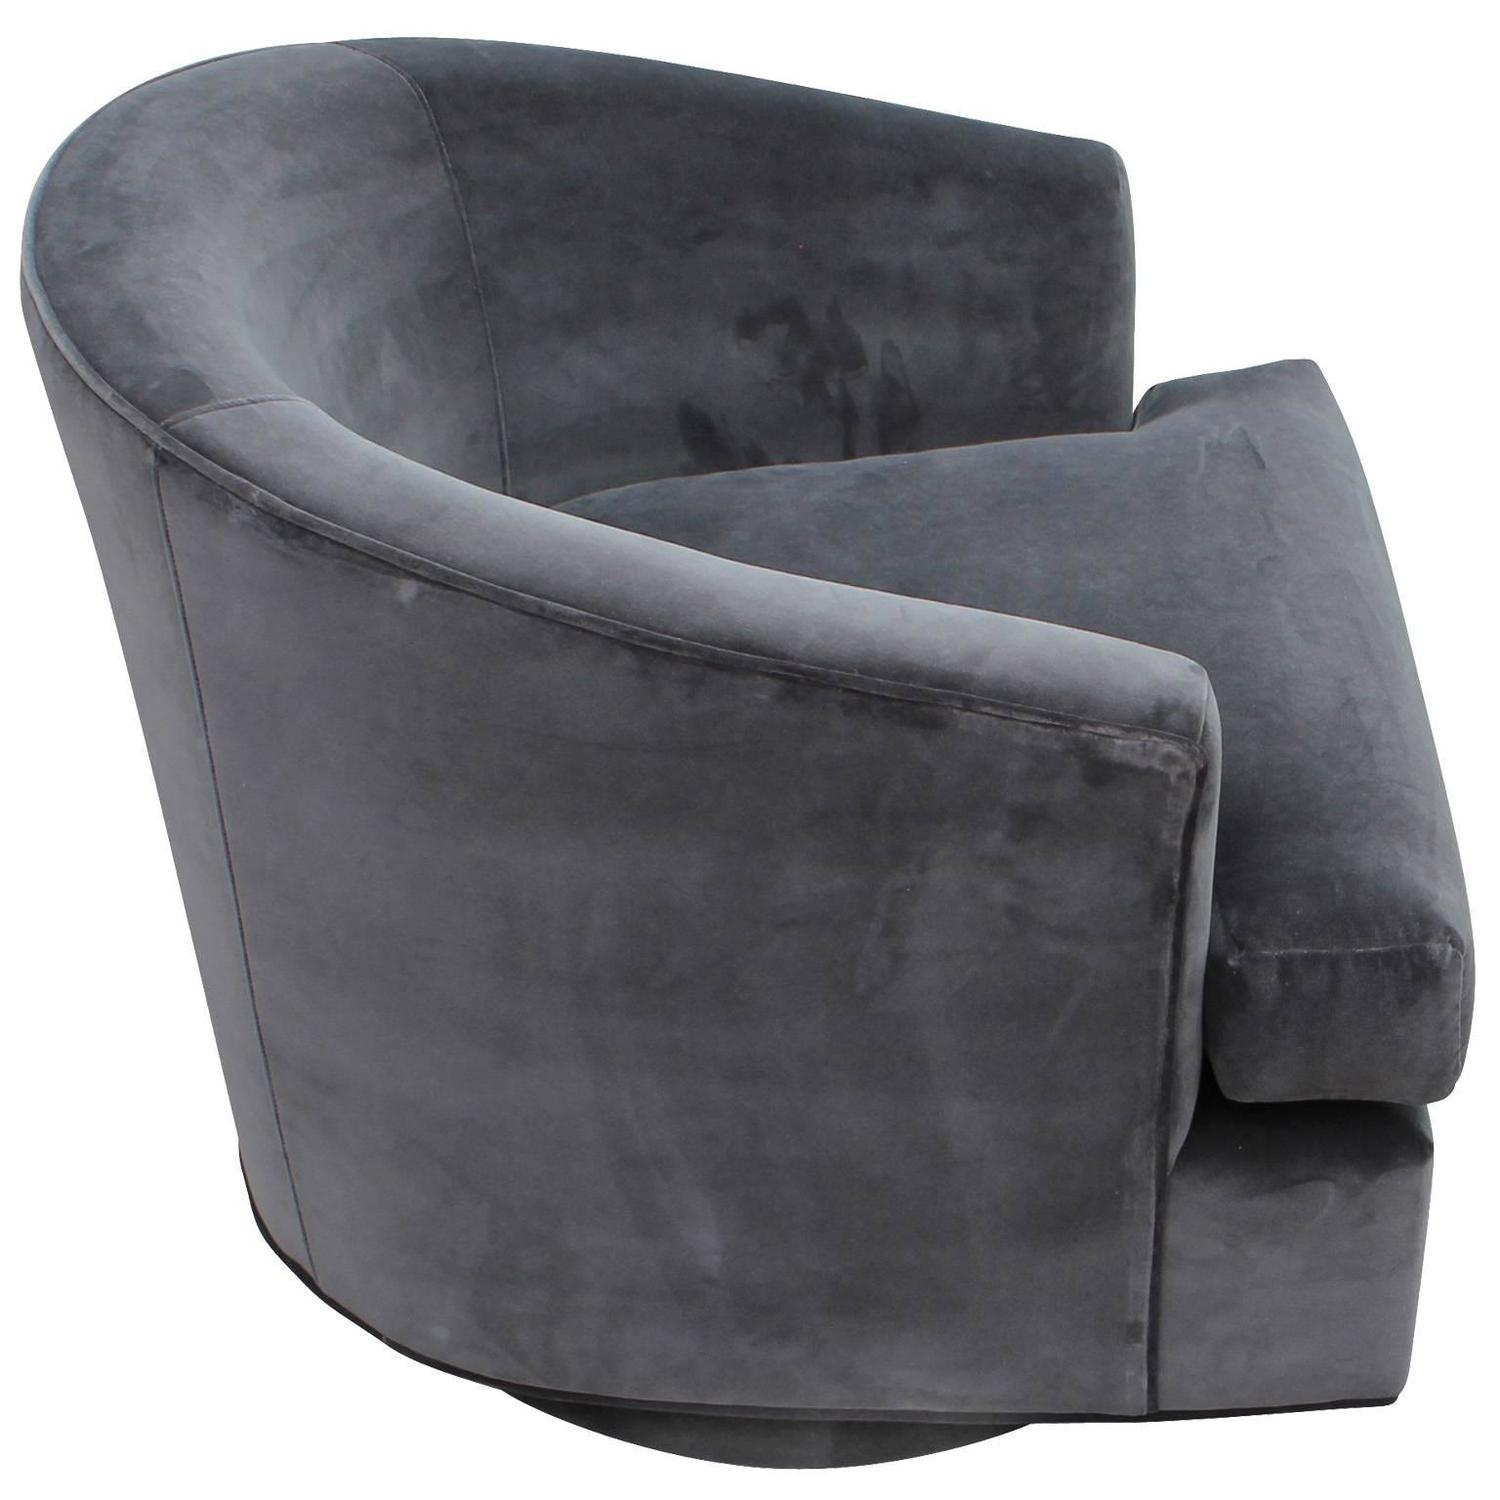 Pair of fully upholstered barrel back grey swivel chairs at 1stdibs